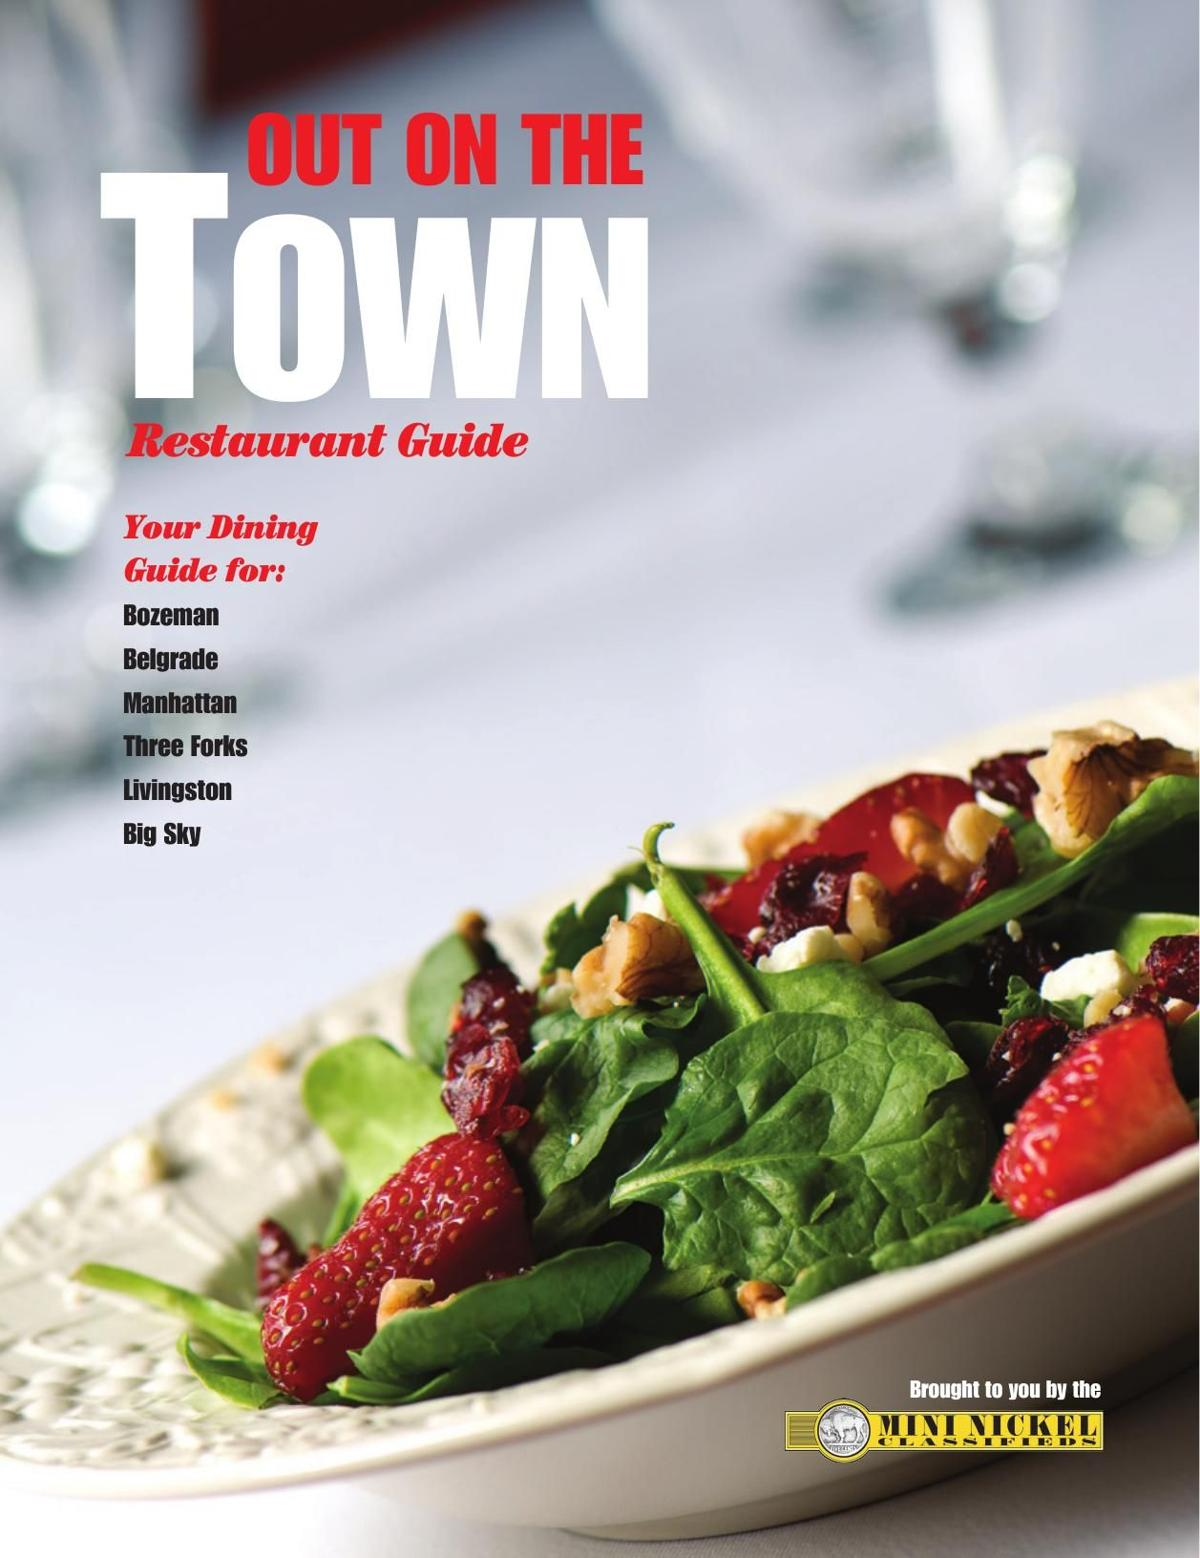 Out on the Town | Restaurant Guide